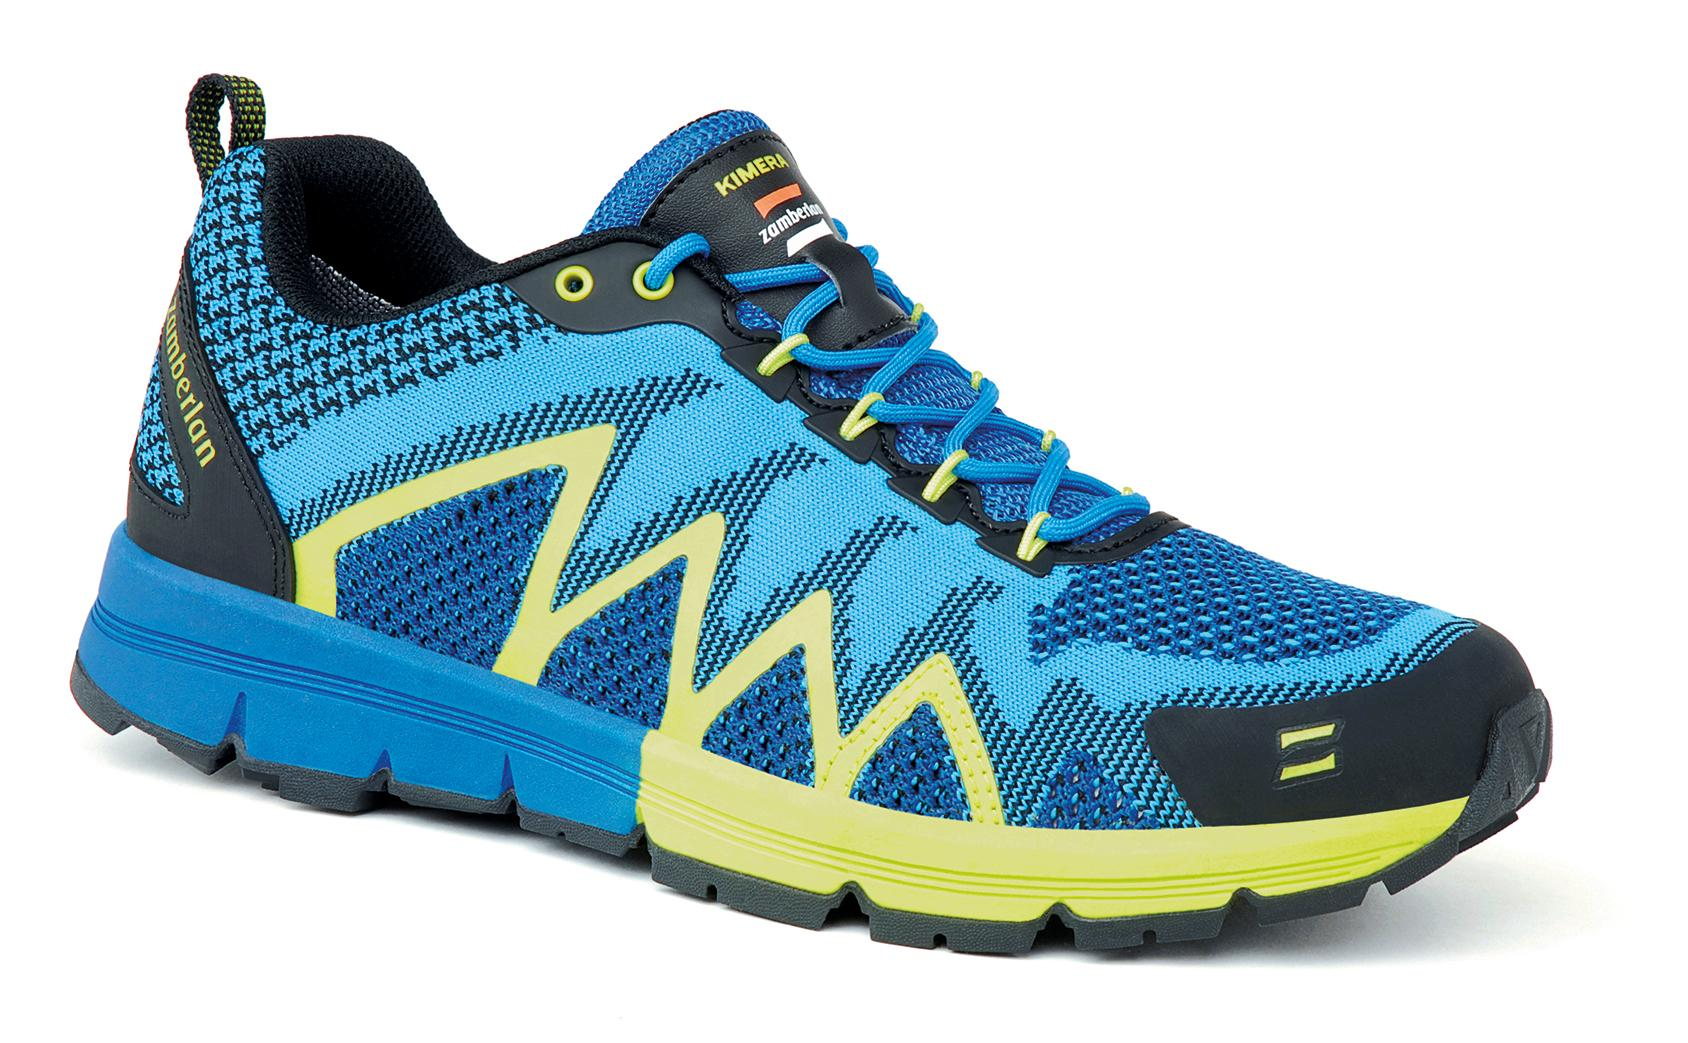 123 KIMERA RR   -   Scarpe  Hiking   -   Blue